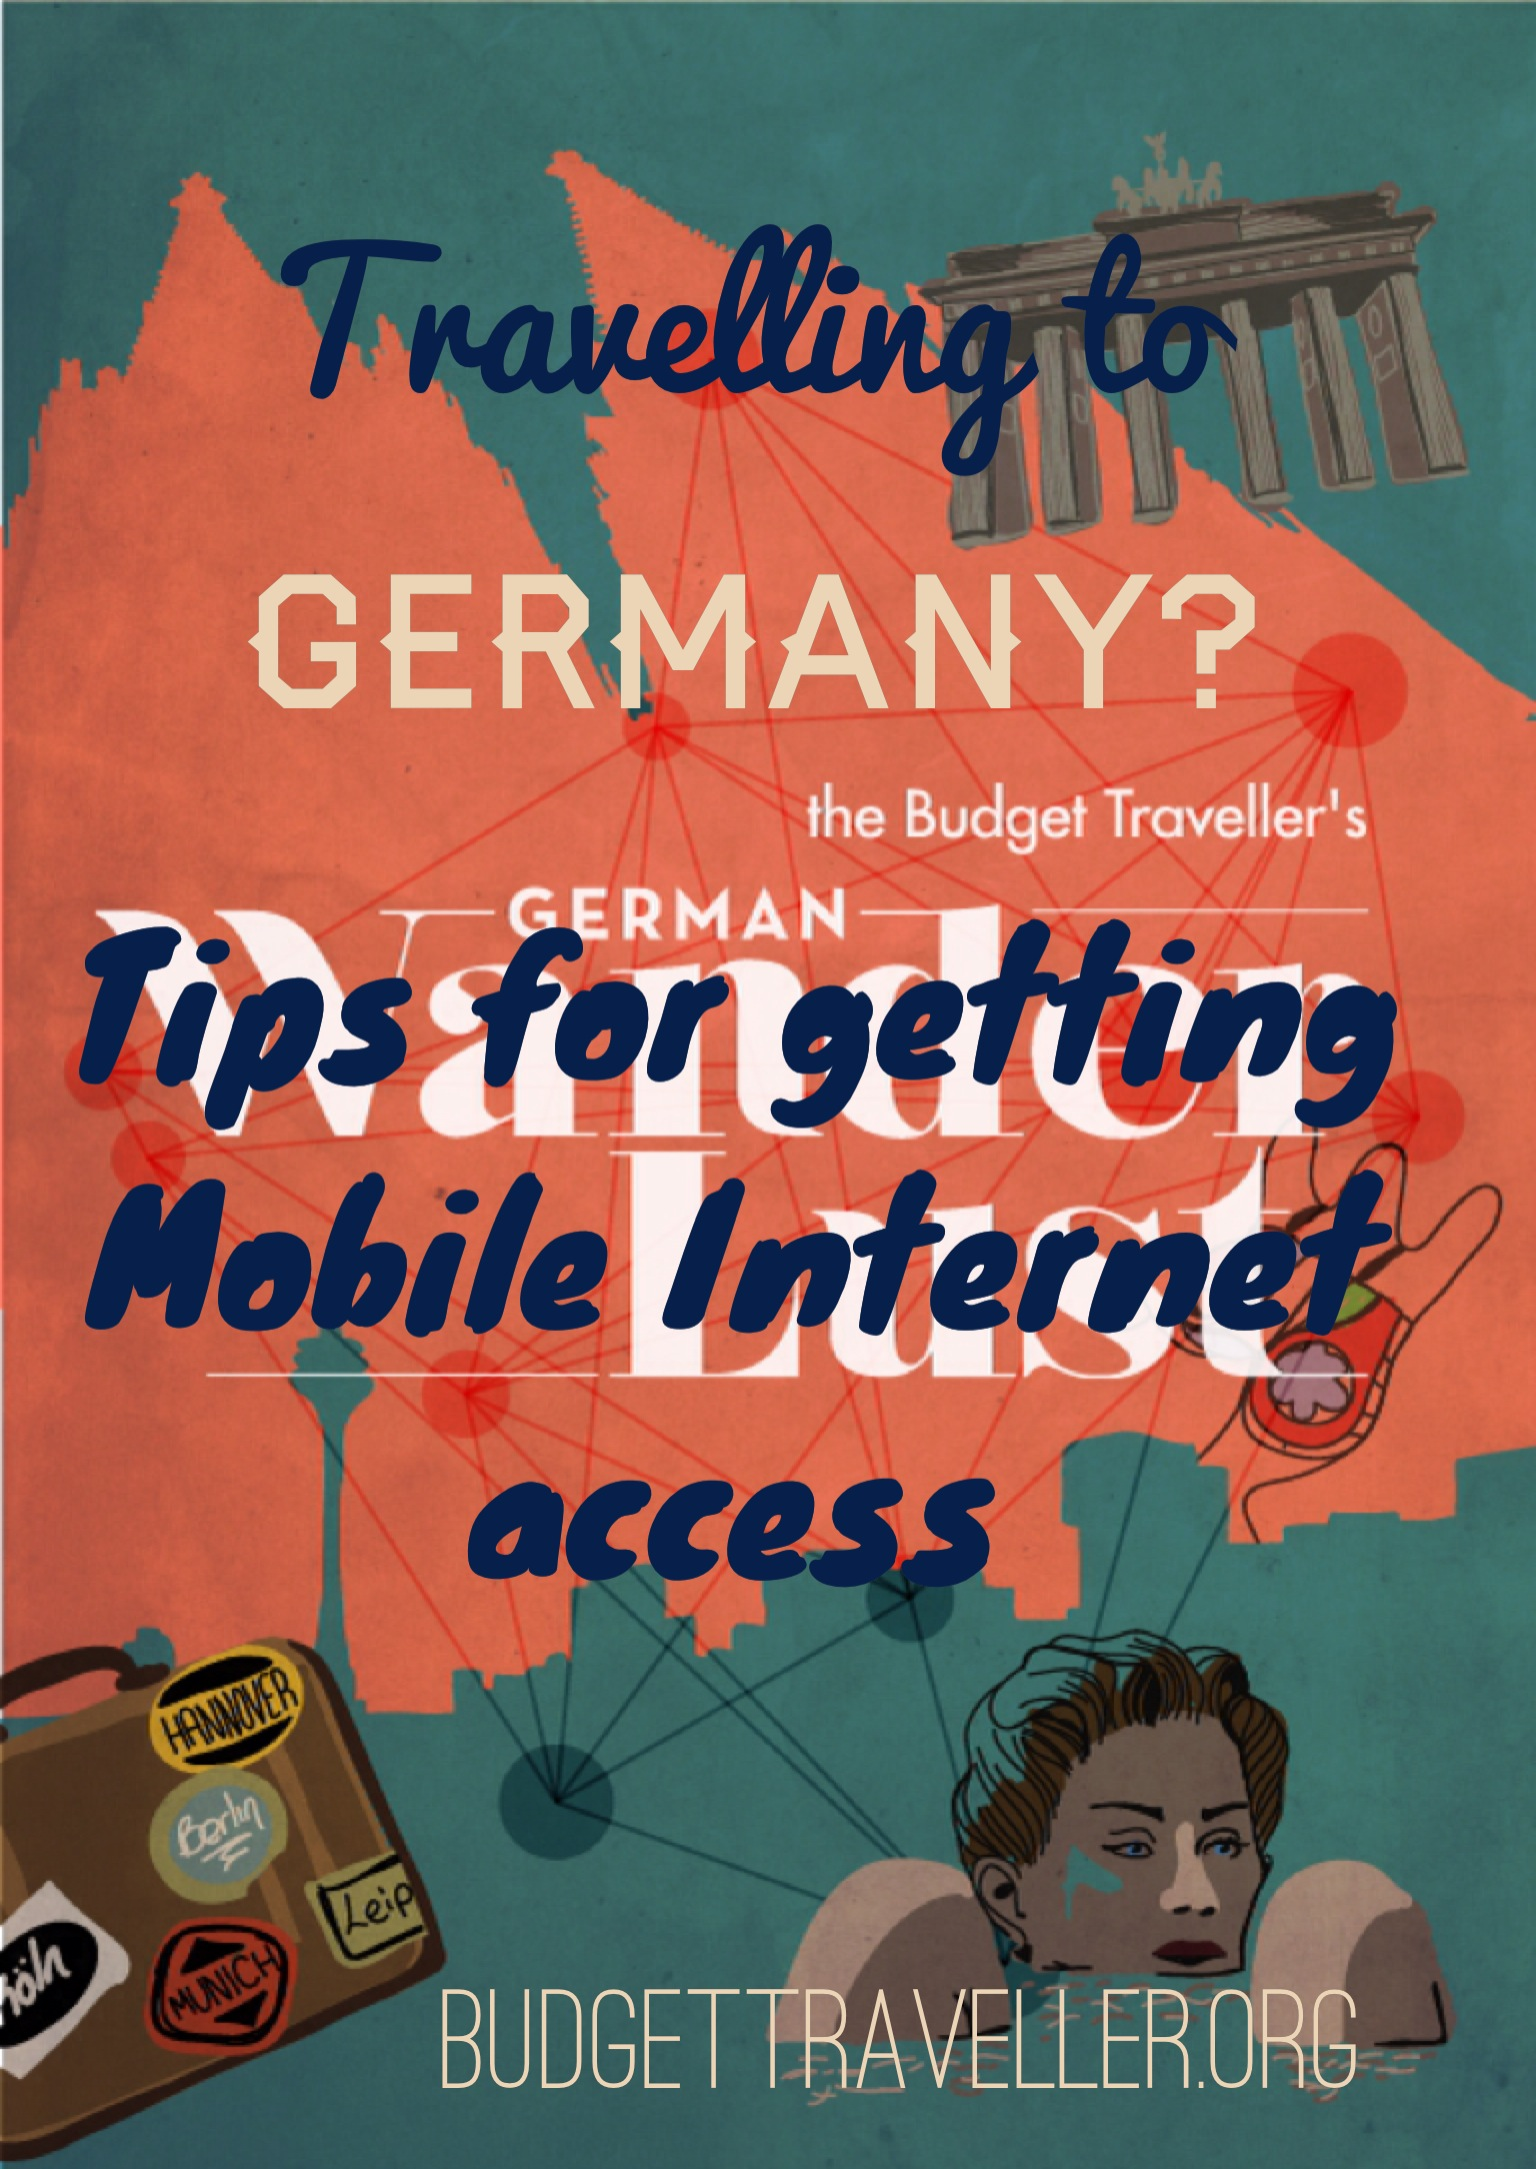 Travelling To Germany Tips For Getting Mobile Internet Access